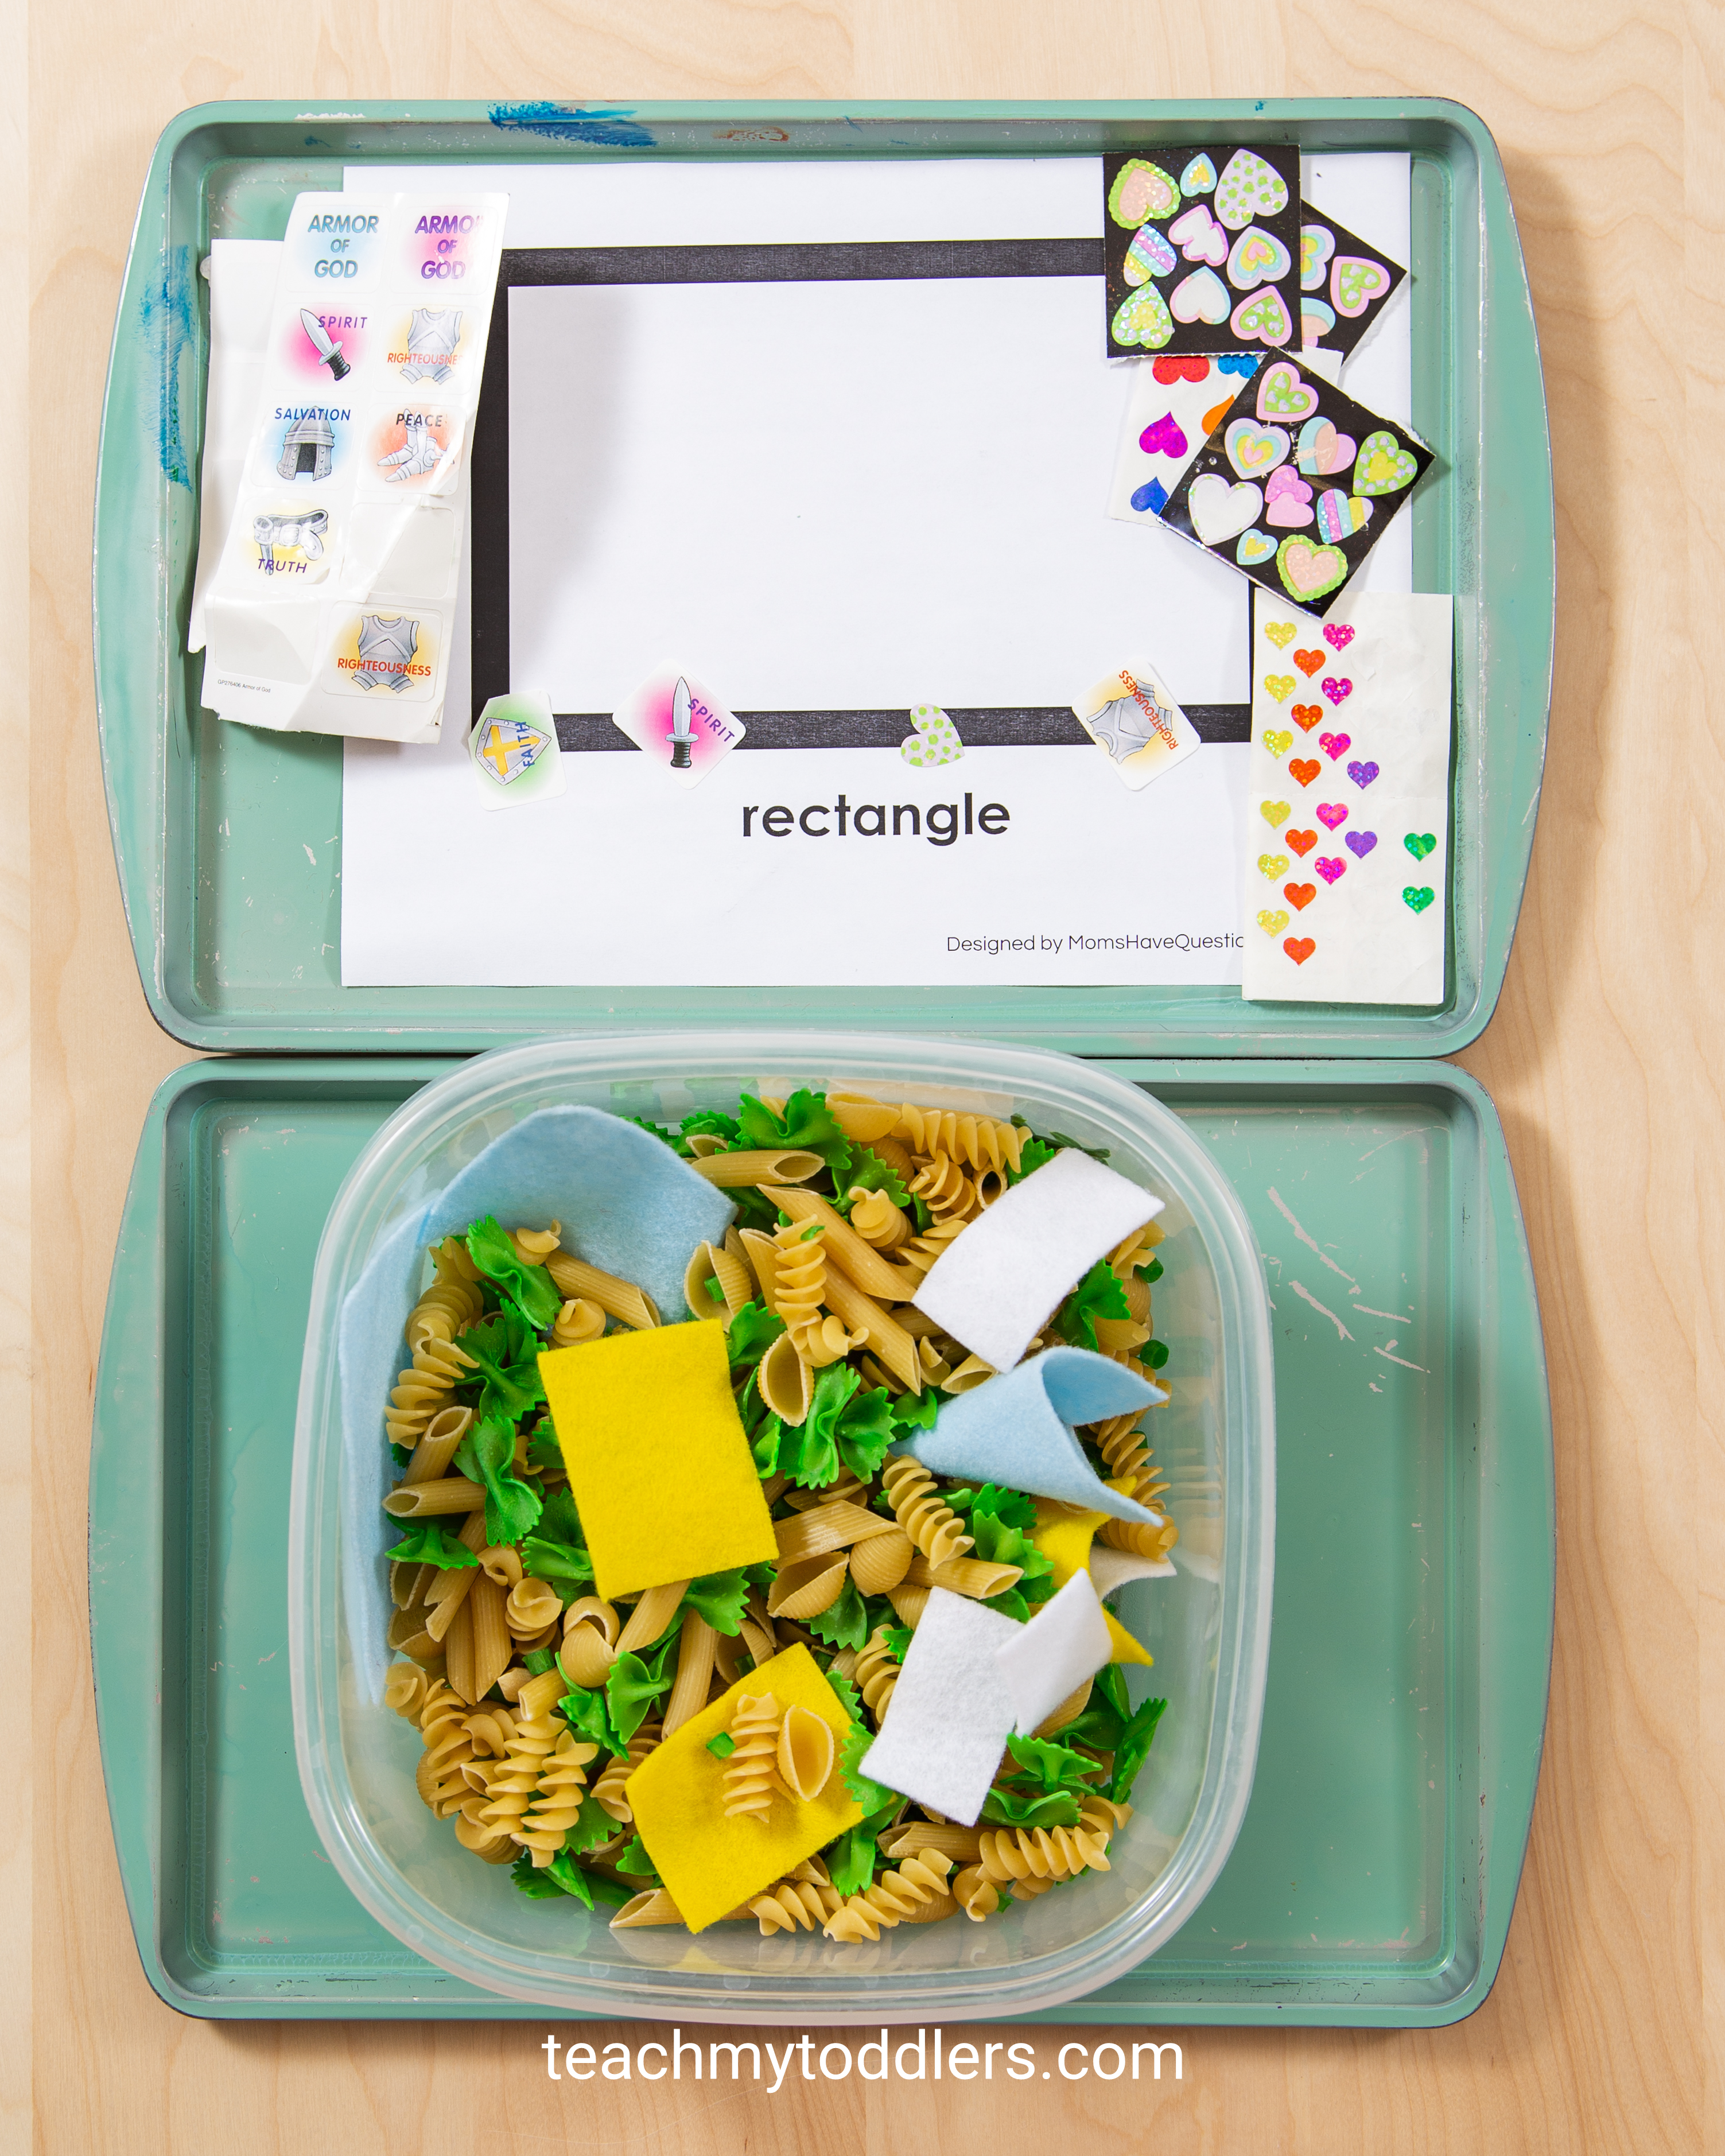 Use these awesome rectangle trays activities to teach toddlers shapes